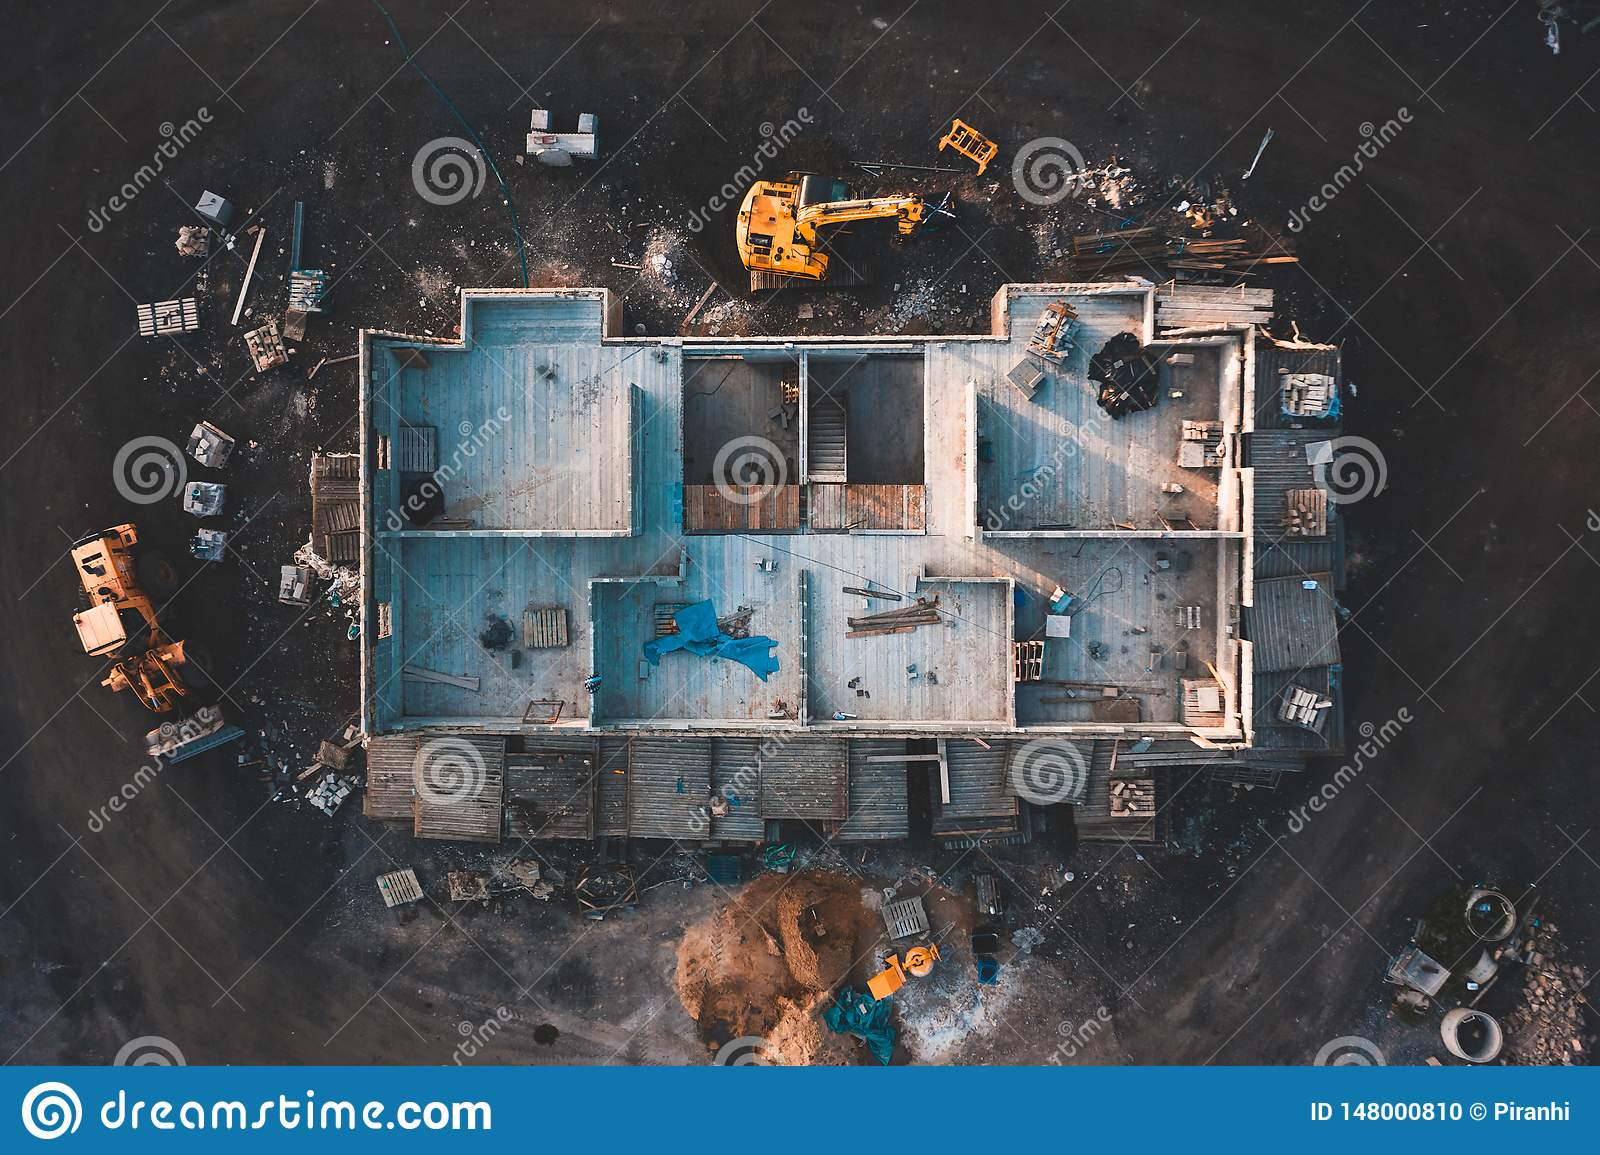 Aerial birdseye image of a house being built